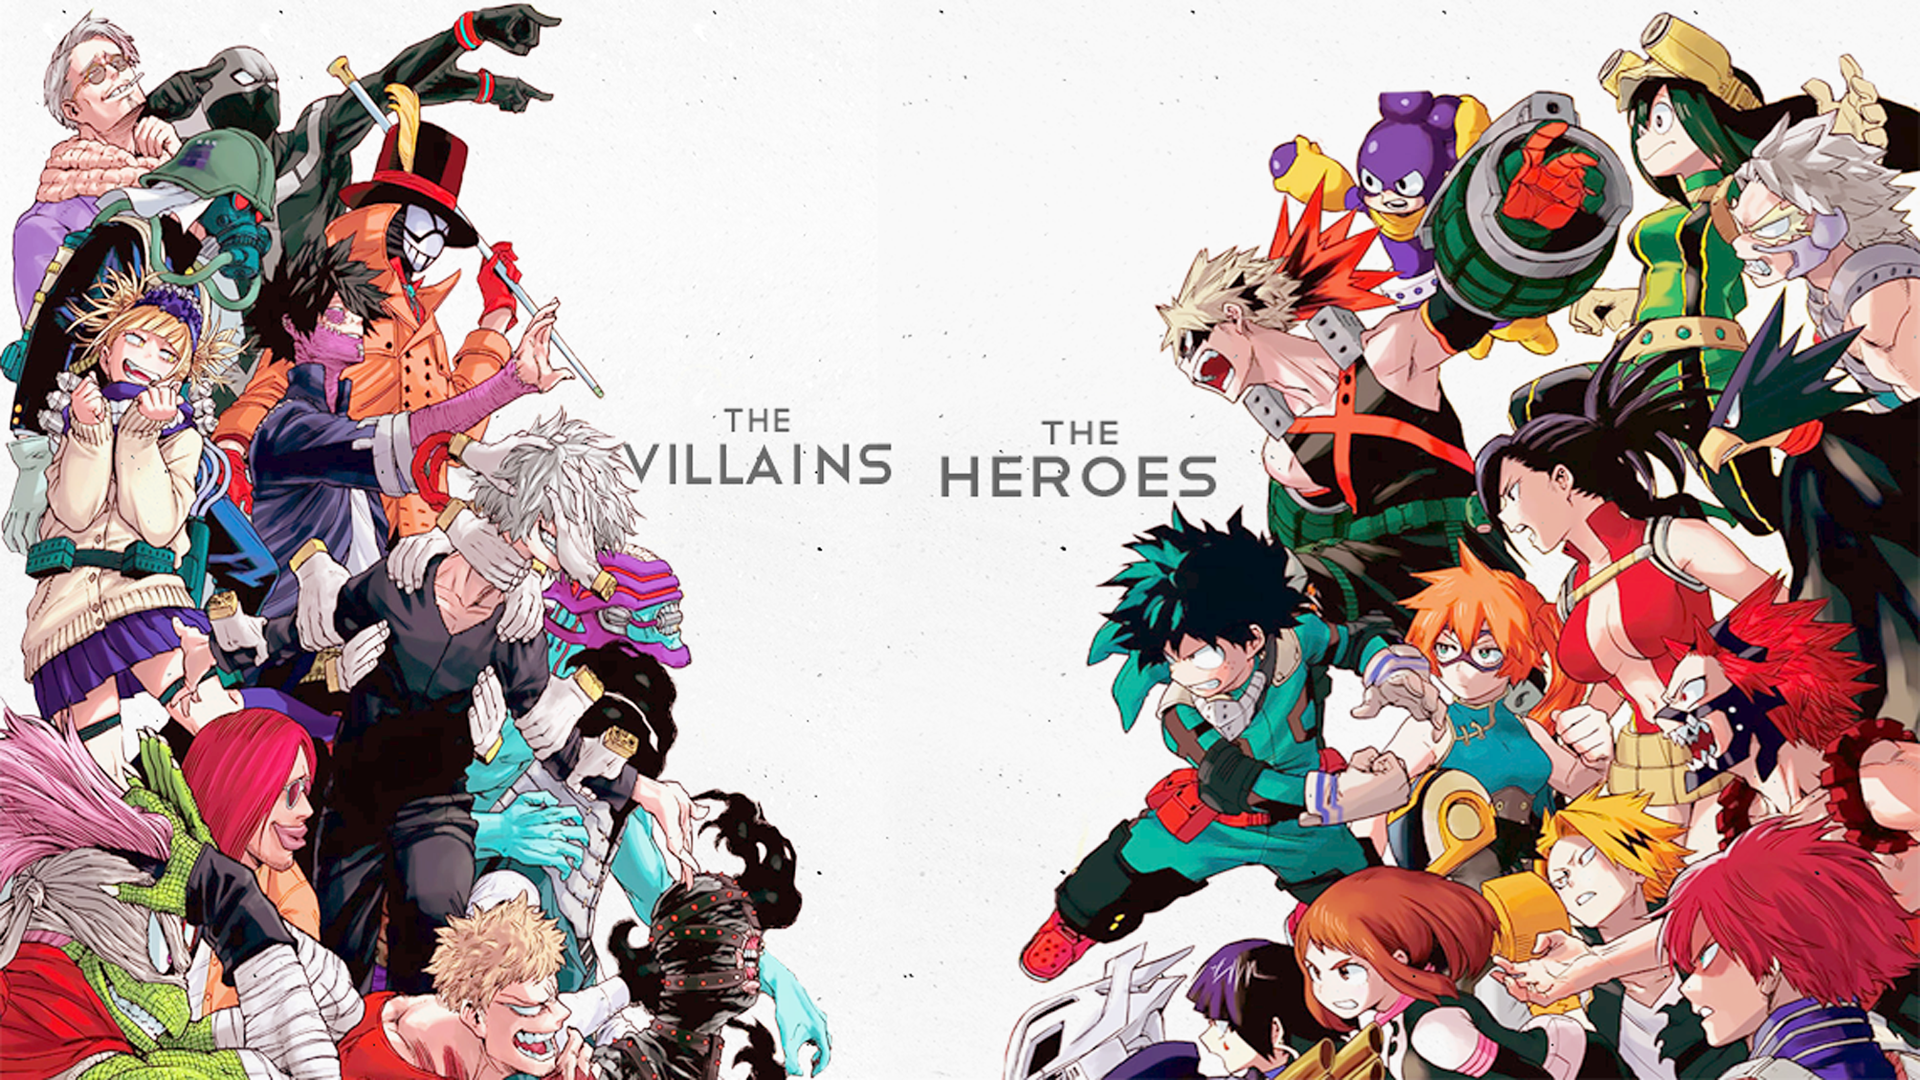 The Villains Vs The Heroes Hd Duvar Kagidi Arka Plan X Id Wallpaper Abyss